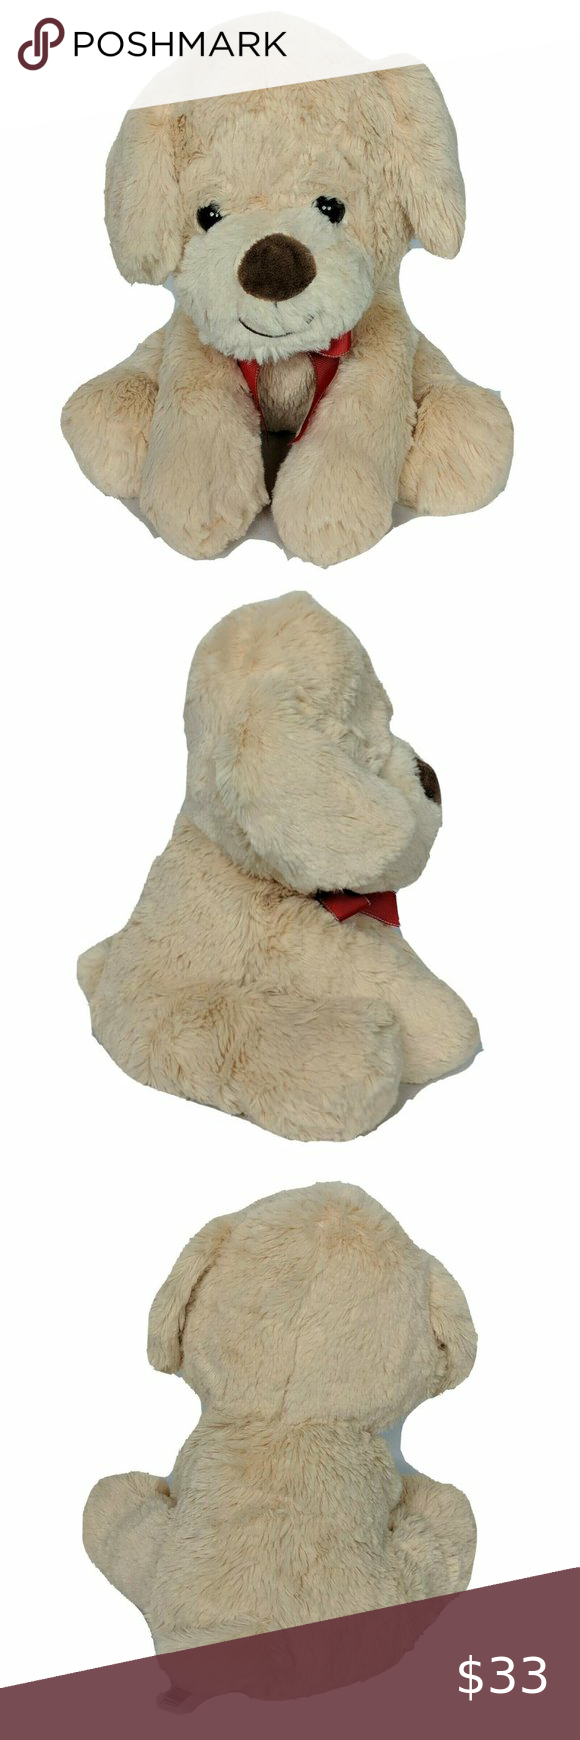 Walgreens Christmas Tan Puppy Dog Plush With Bow Dogs And Puppies Puppies Pet Toys [ 1740 x 580 Pixel ]